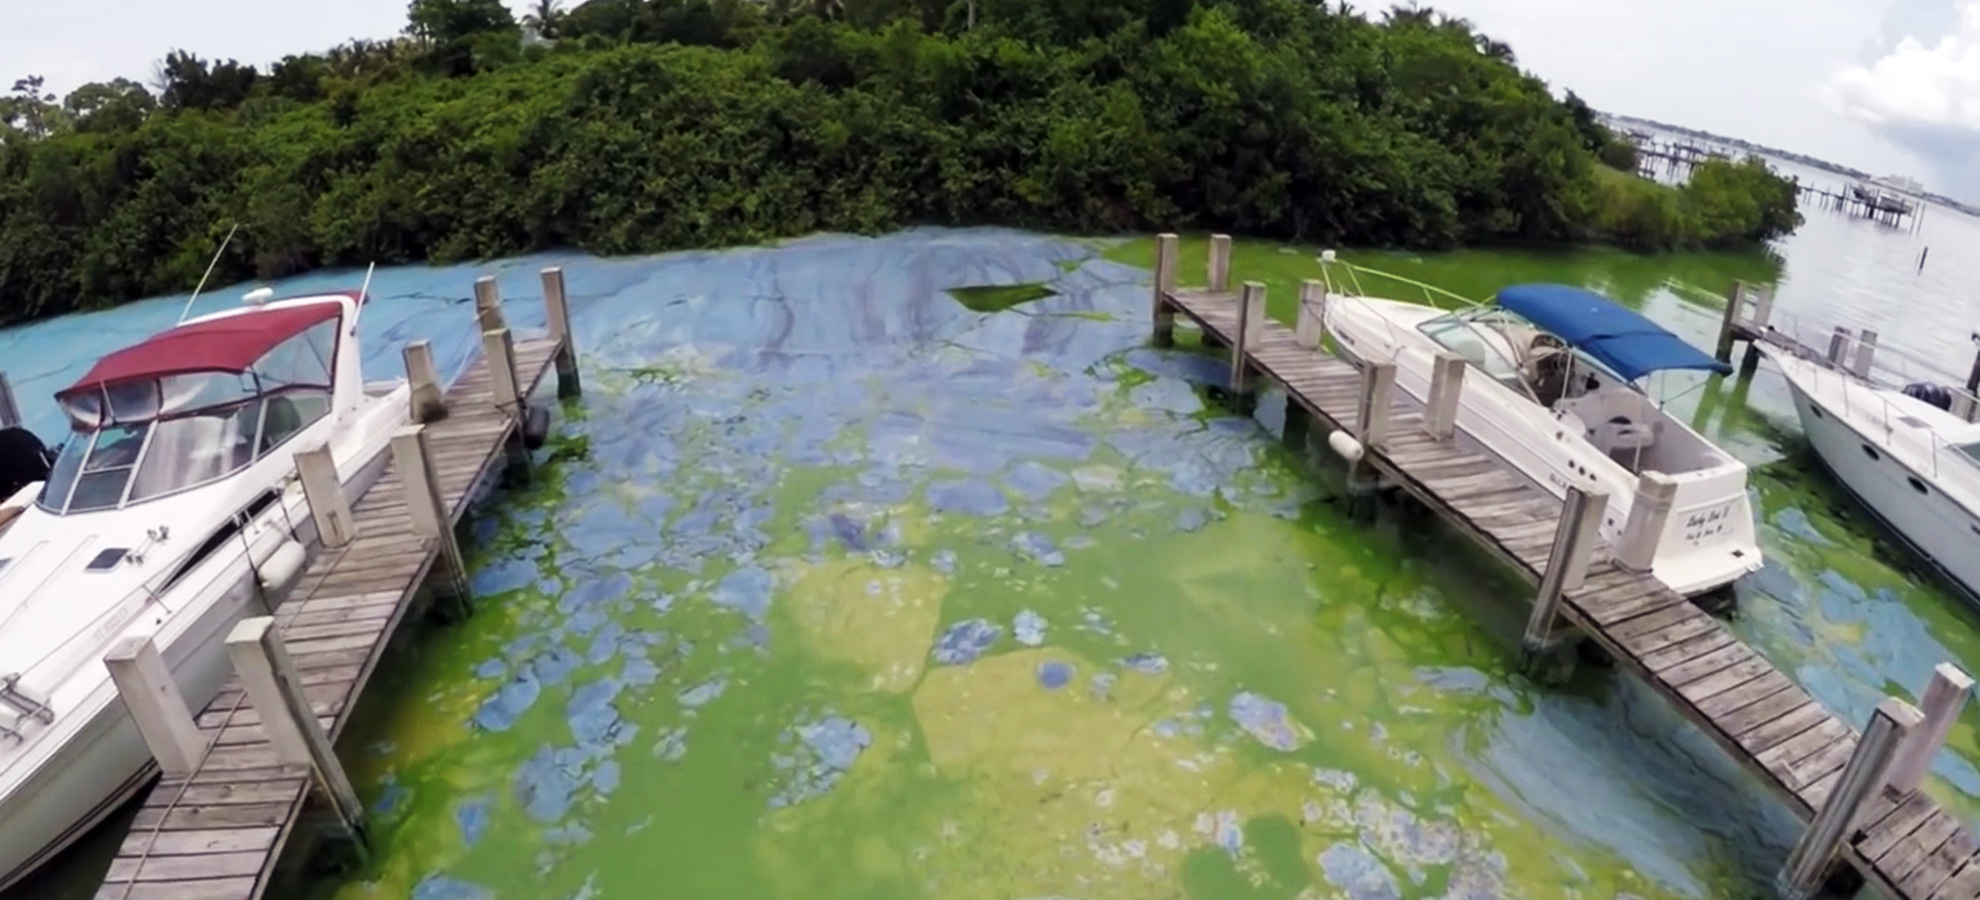 The algae outbreak at the St. Lucie River, June 27, 2016.